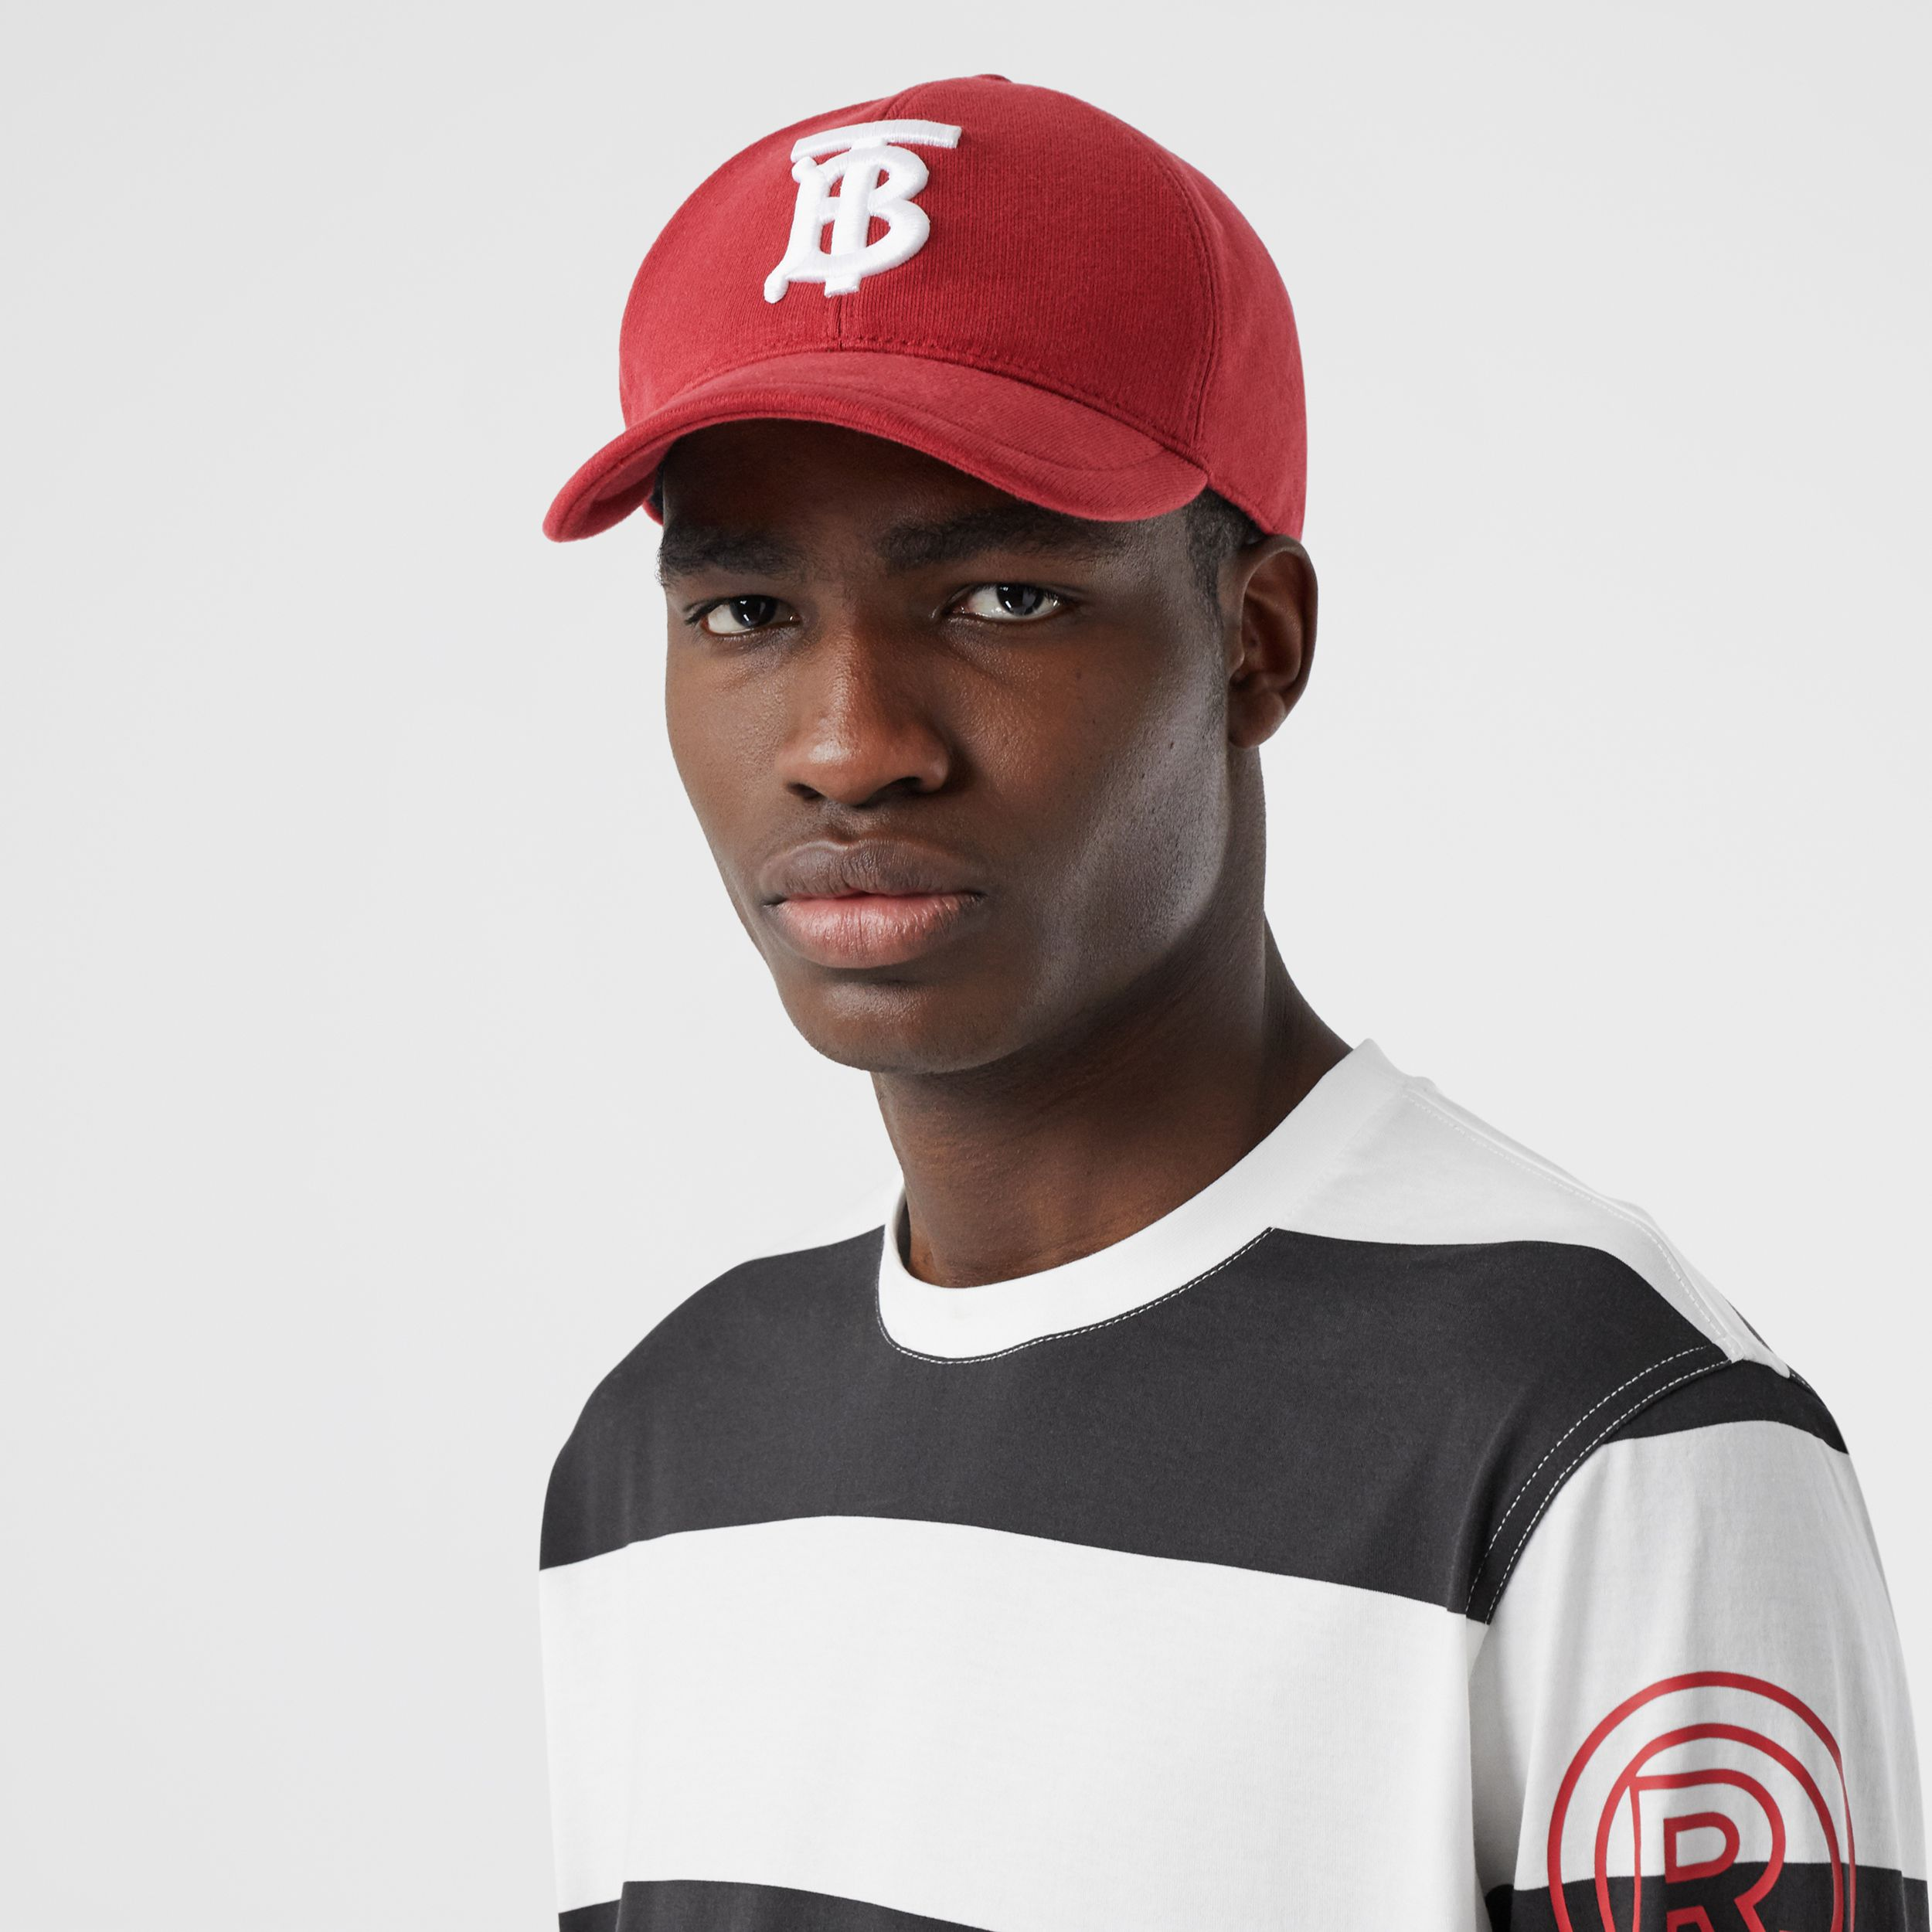 Monogram Motif Jersey Baseball Cap in Dark Carmine | Burberry Singapore - 4